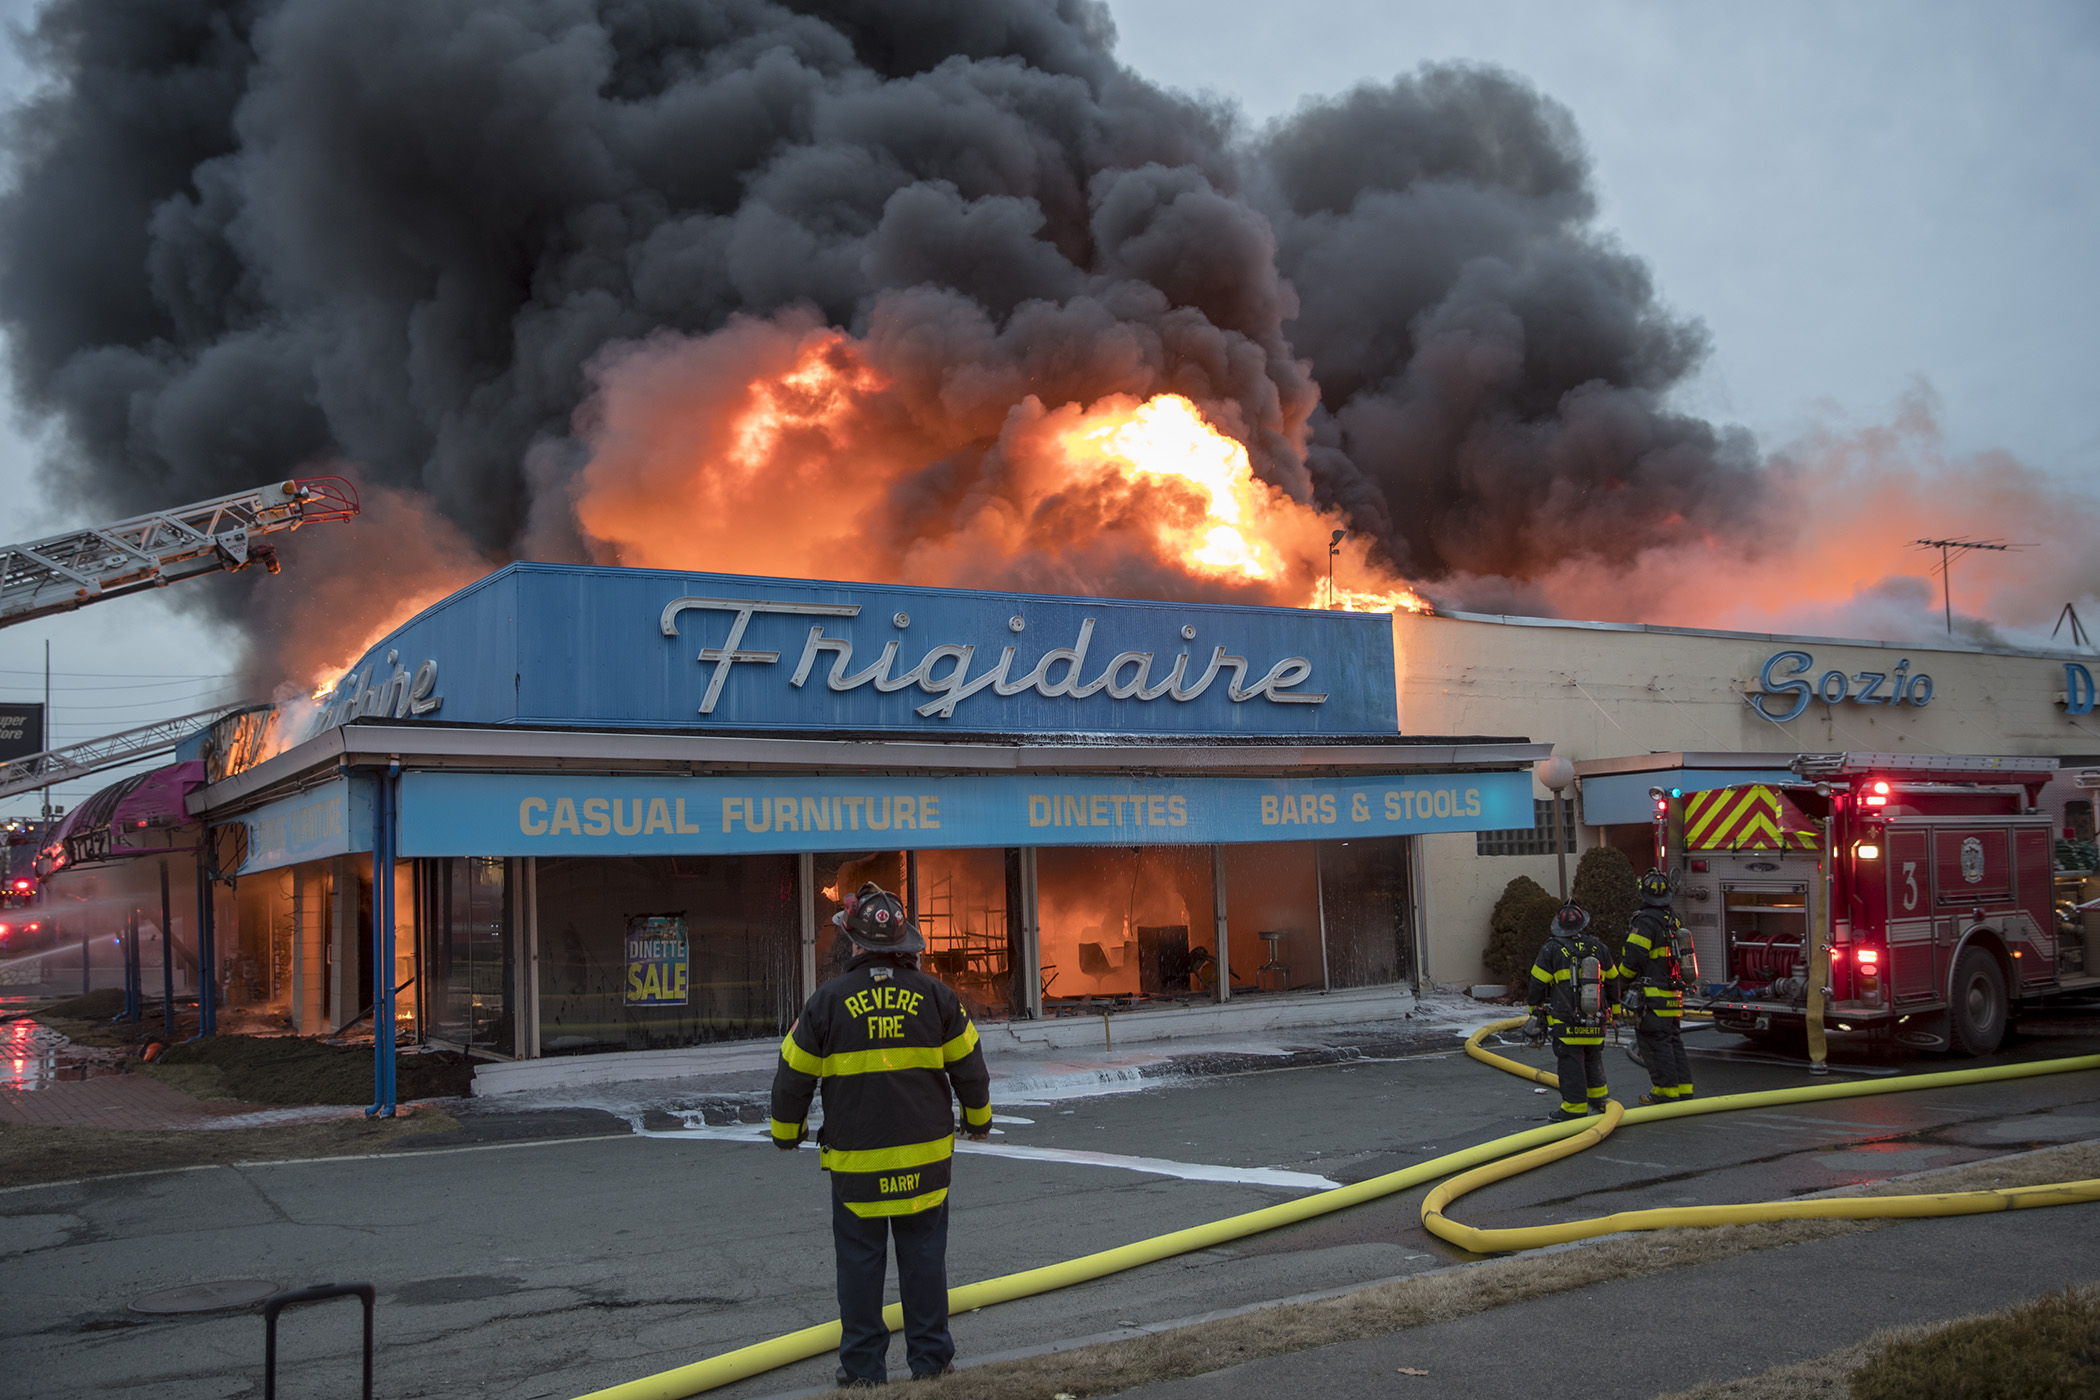 February 17, 2018-Revere,MA. Revere and area firefighters battle a 5 alarm fire at 61q Squire rd, Sozio Appliances. Staff photo by Mark Garfinkel